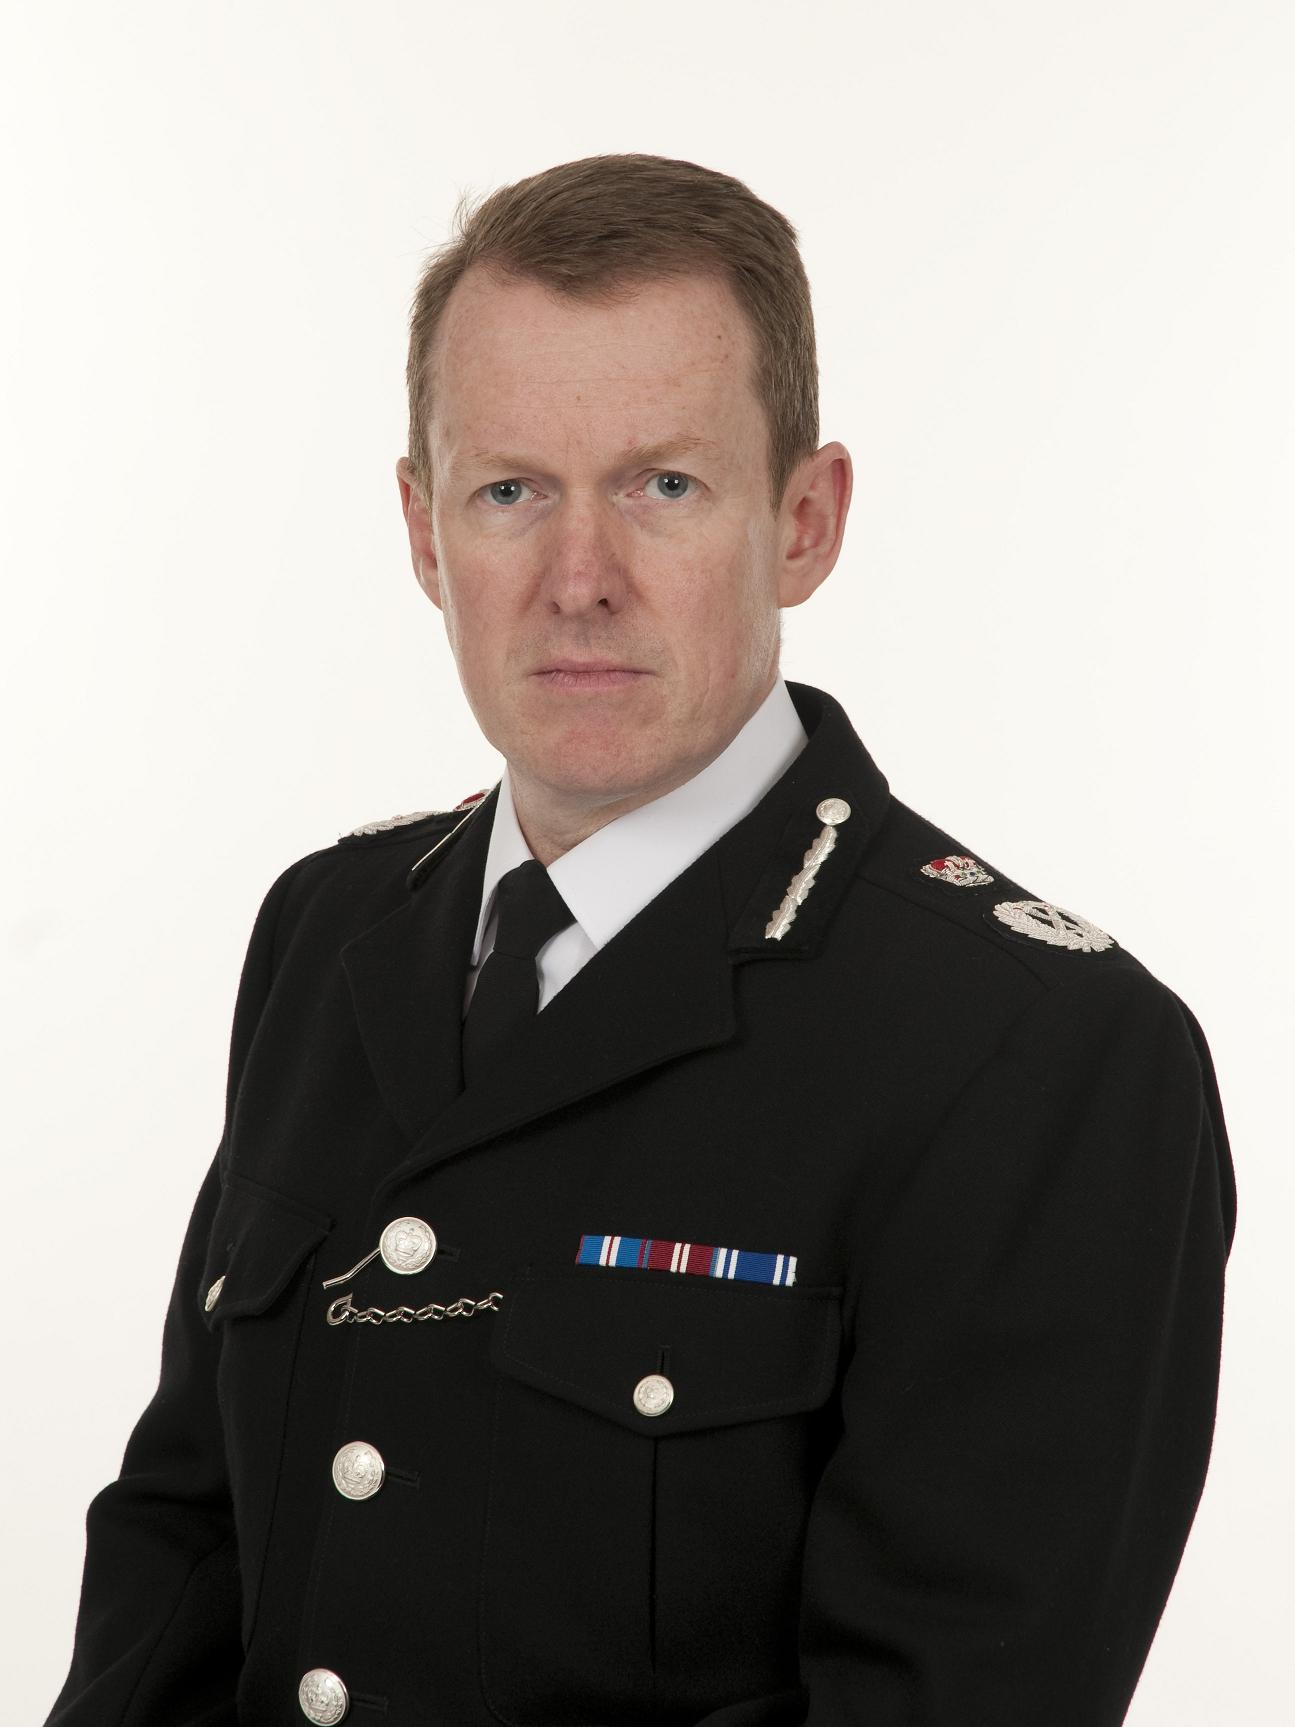 PCSO cuts fourth highest in England